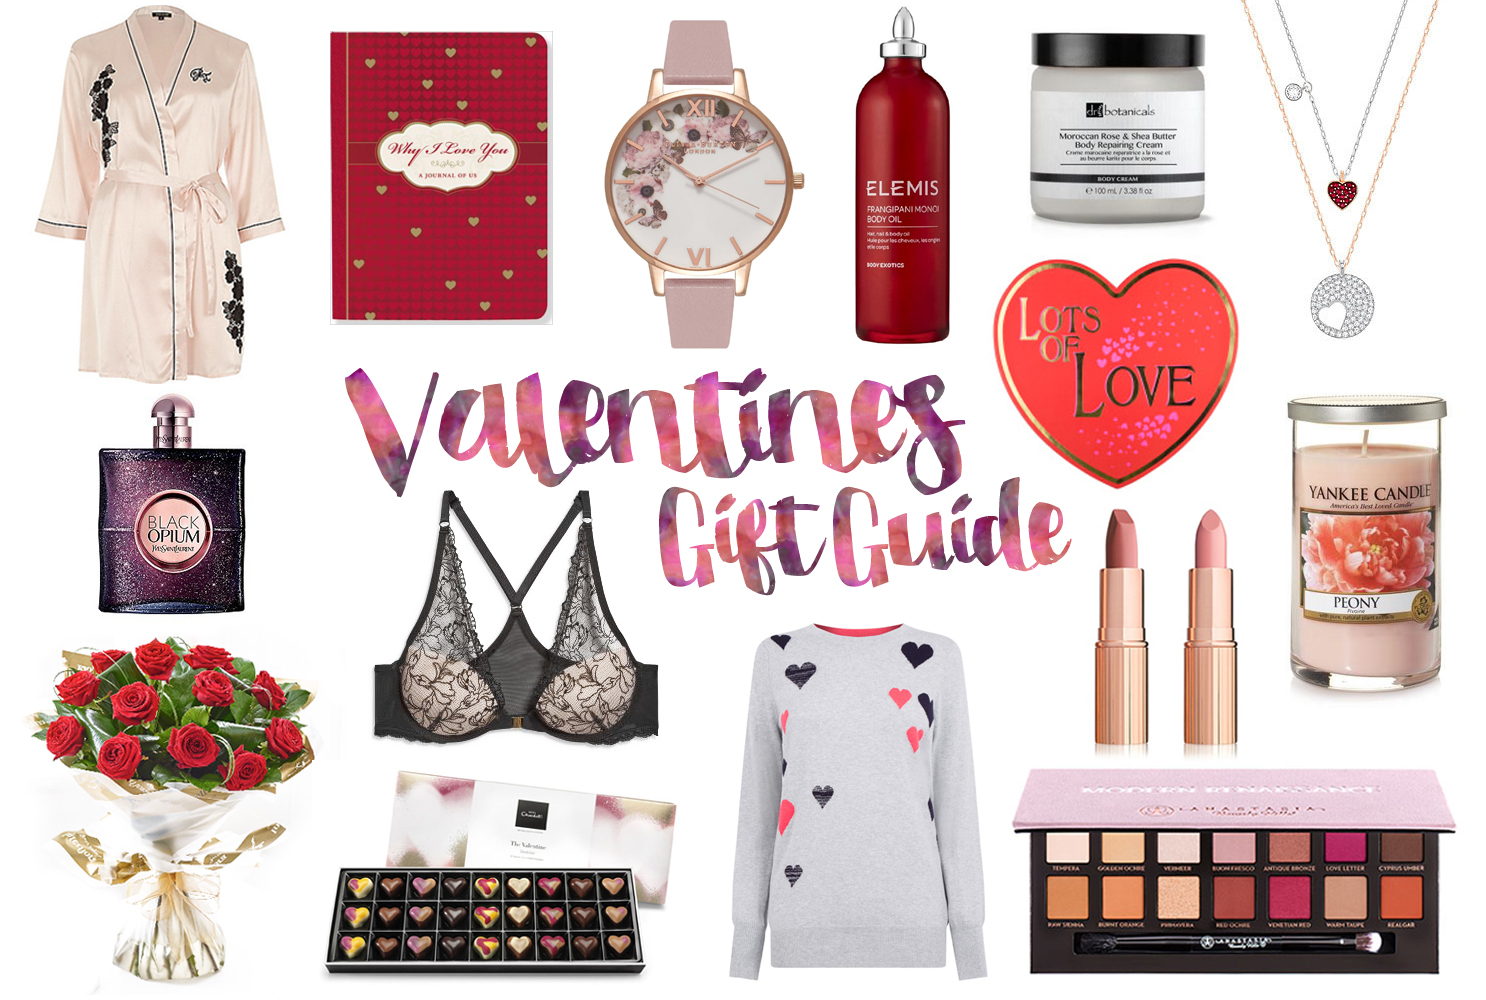 Valentine's Day Gift Guide for Her, Katie Kirk Loves, Gift Guide, Gift Ideas, Beauty Gifts, Romantic Gifts, Valentines Gift Ideaas, Beauty Blogger, UK Blogger